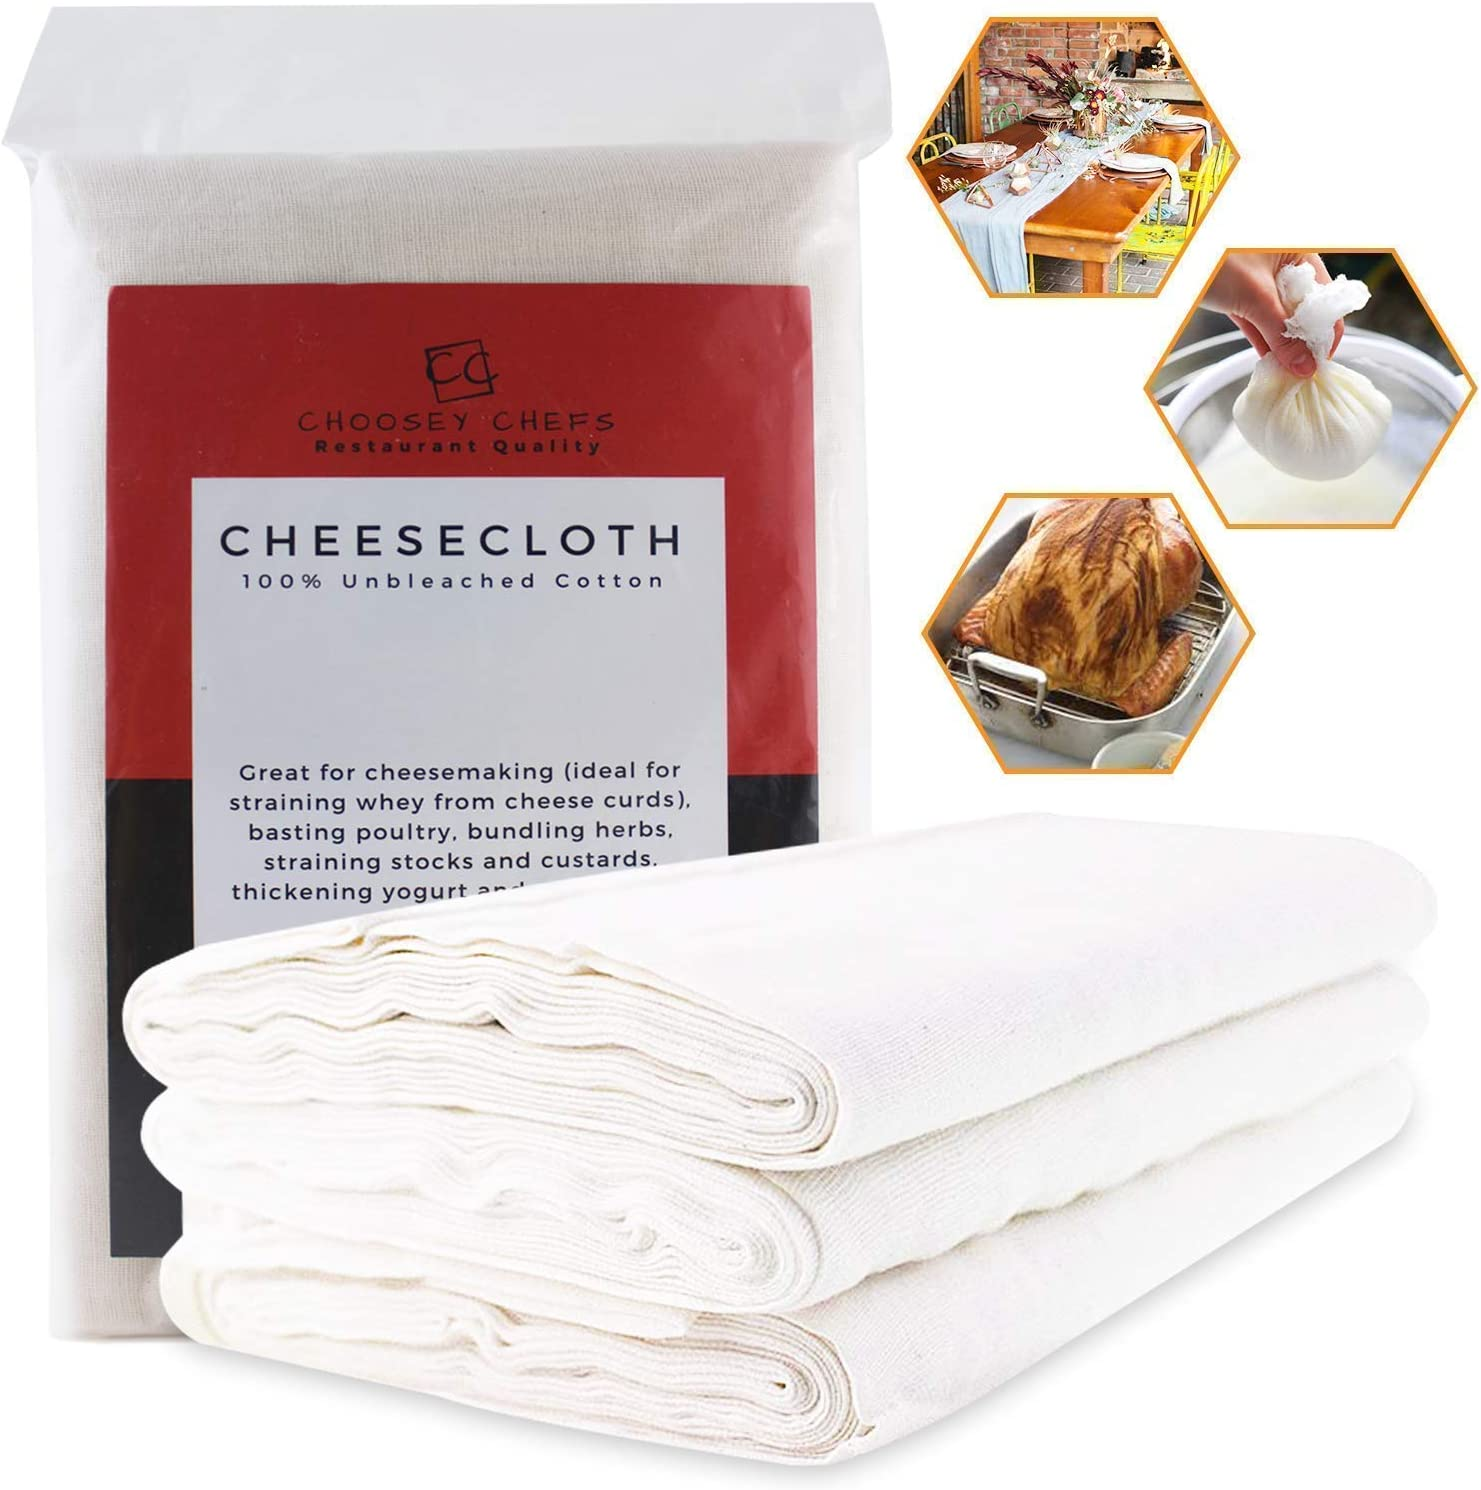 Unbleached Cheesecloth, 36 sq. ft, Grade 90, Reusable, Super Fine Cheese Cloth for Straining - Jamming - Preserving Foods - Cheesemaking - Decorating